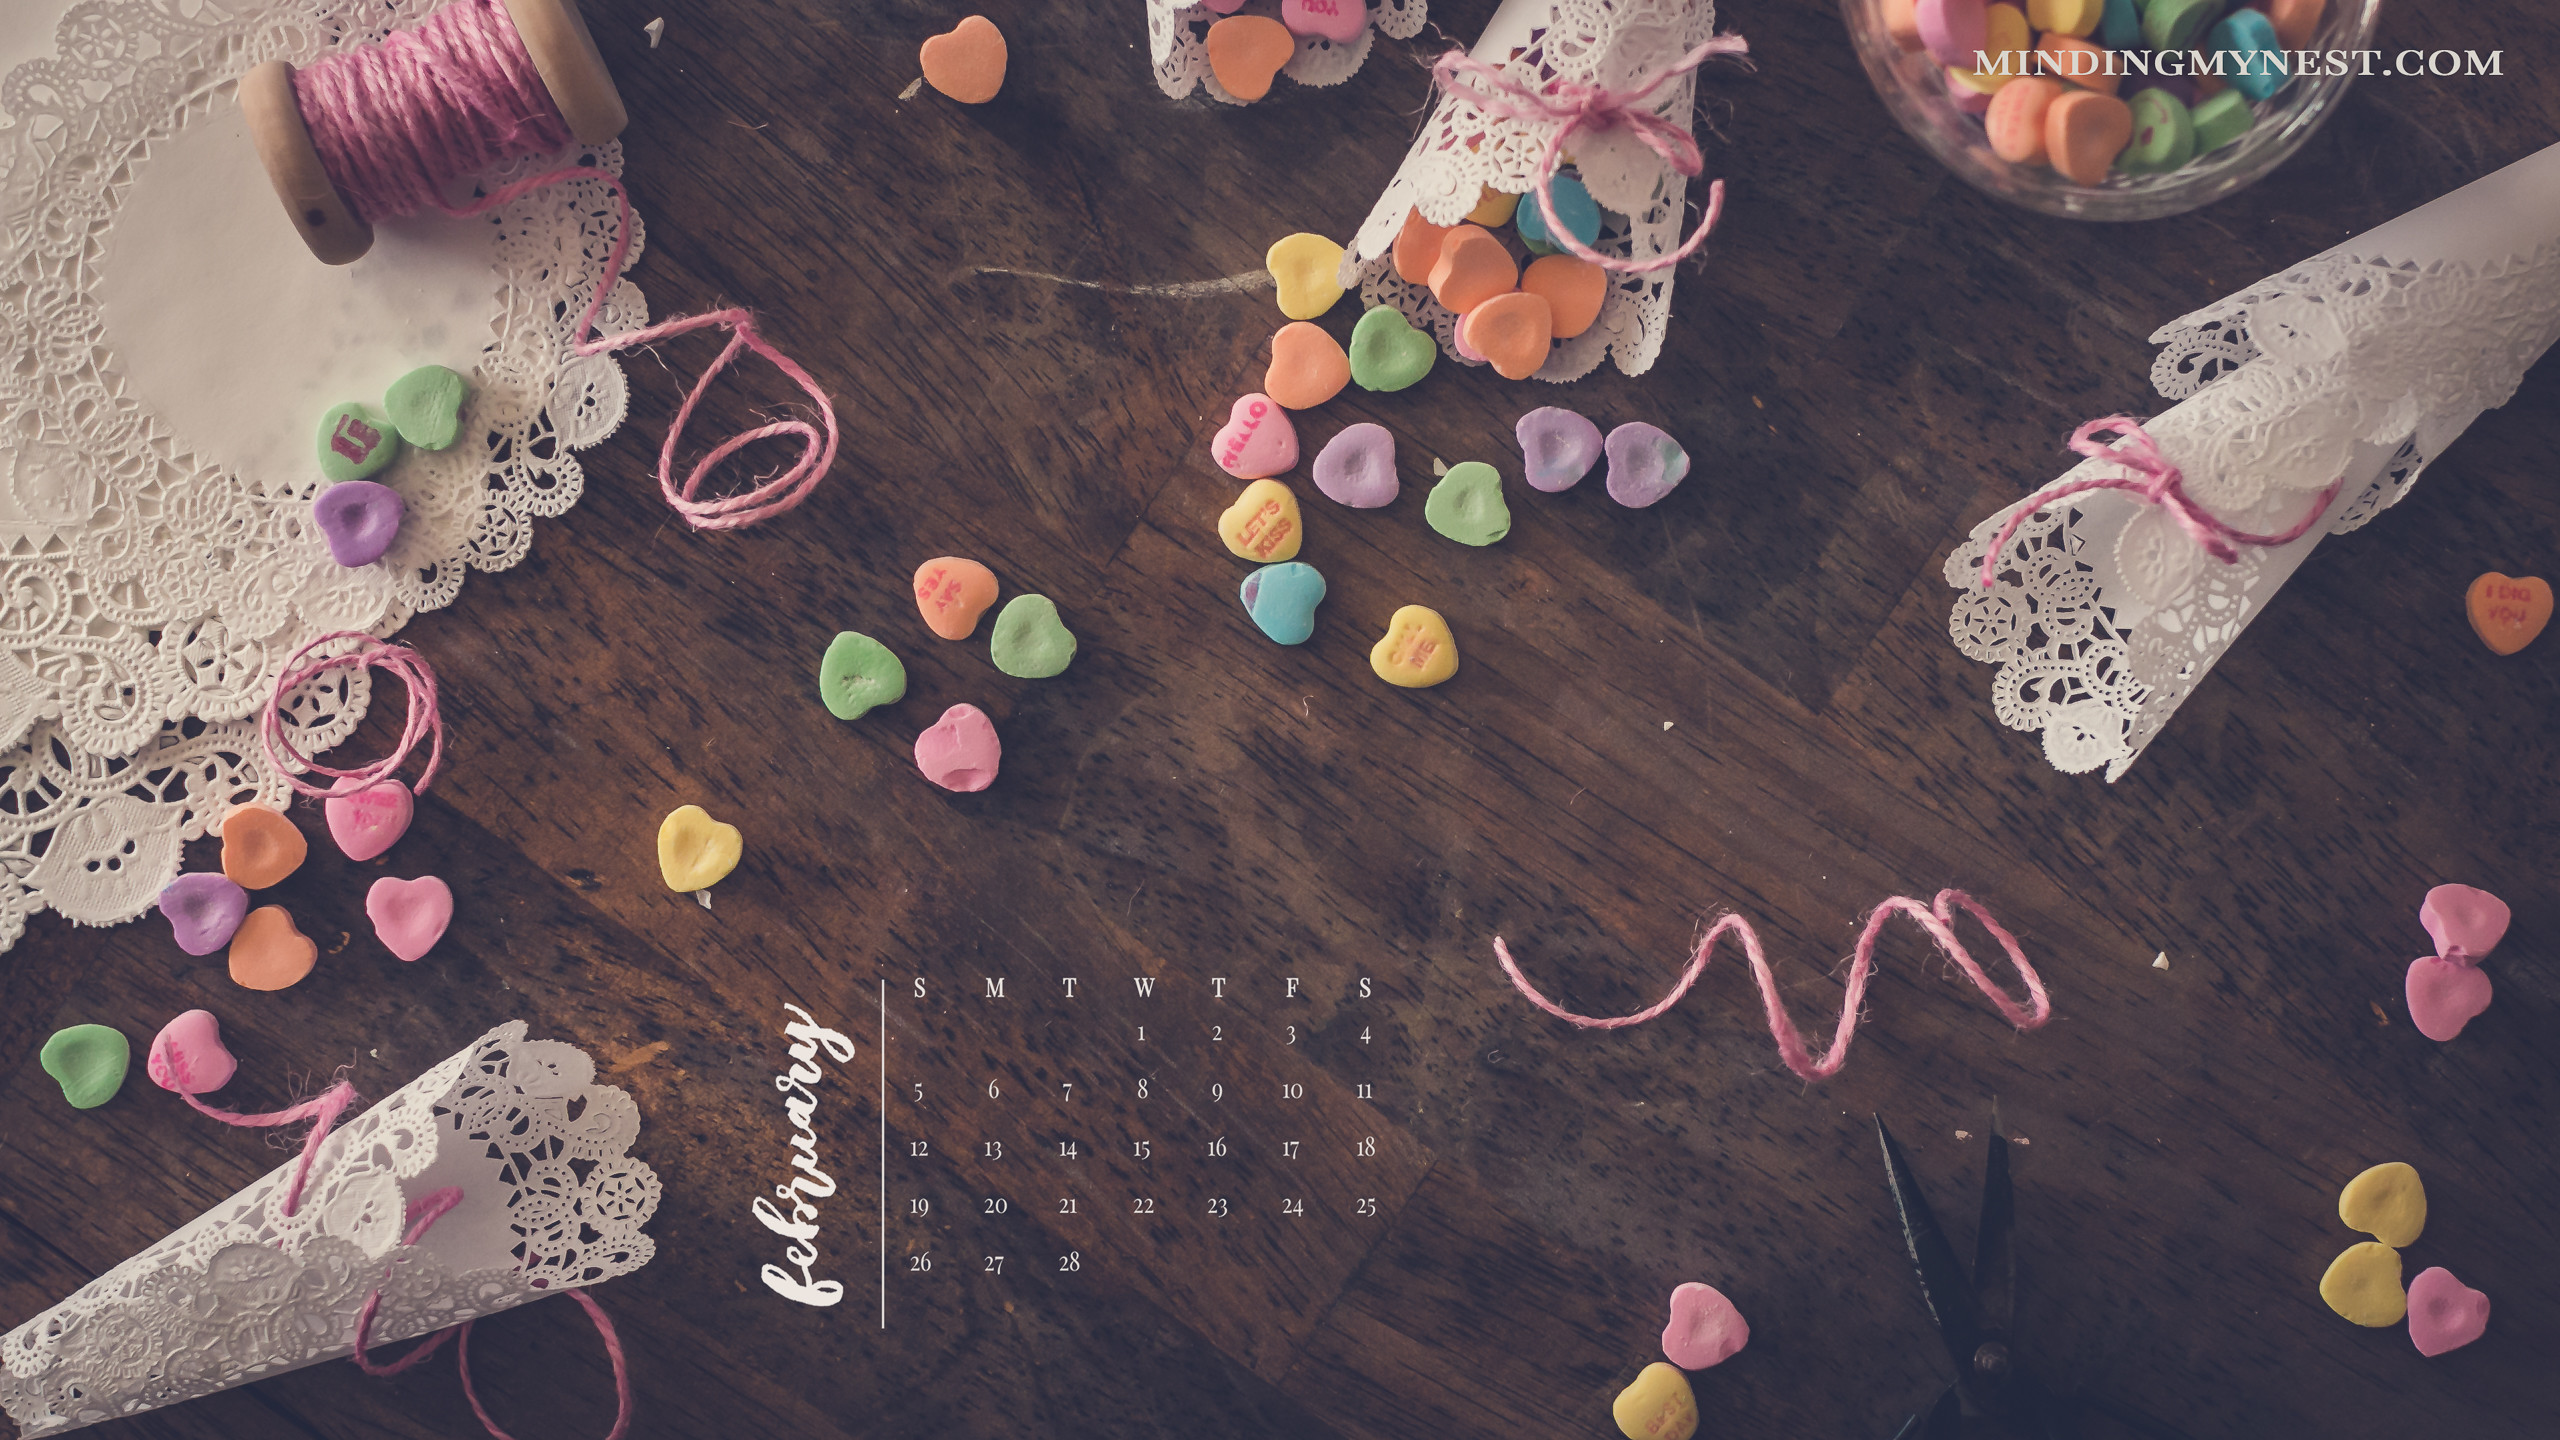 Desktop Wallpaper Calendar February 2018 47 Images